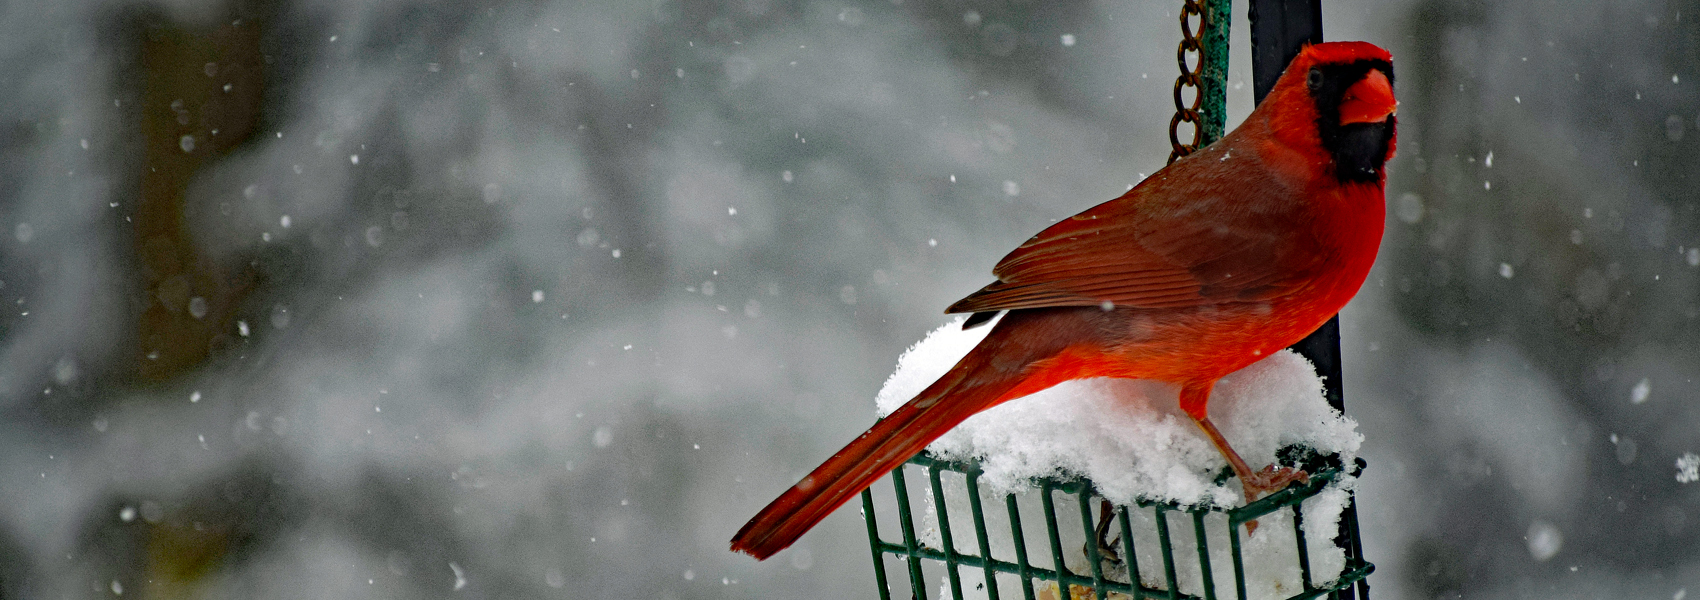 A Northern cardinal stands atop a bird feeder in snow